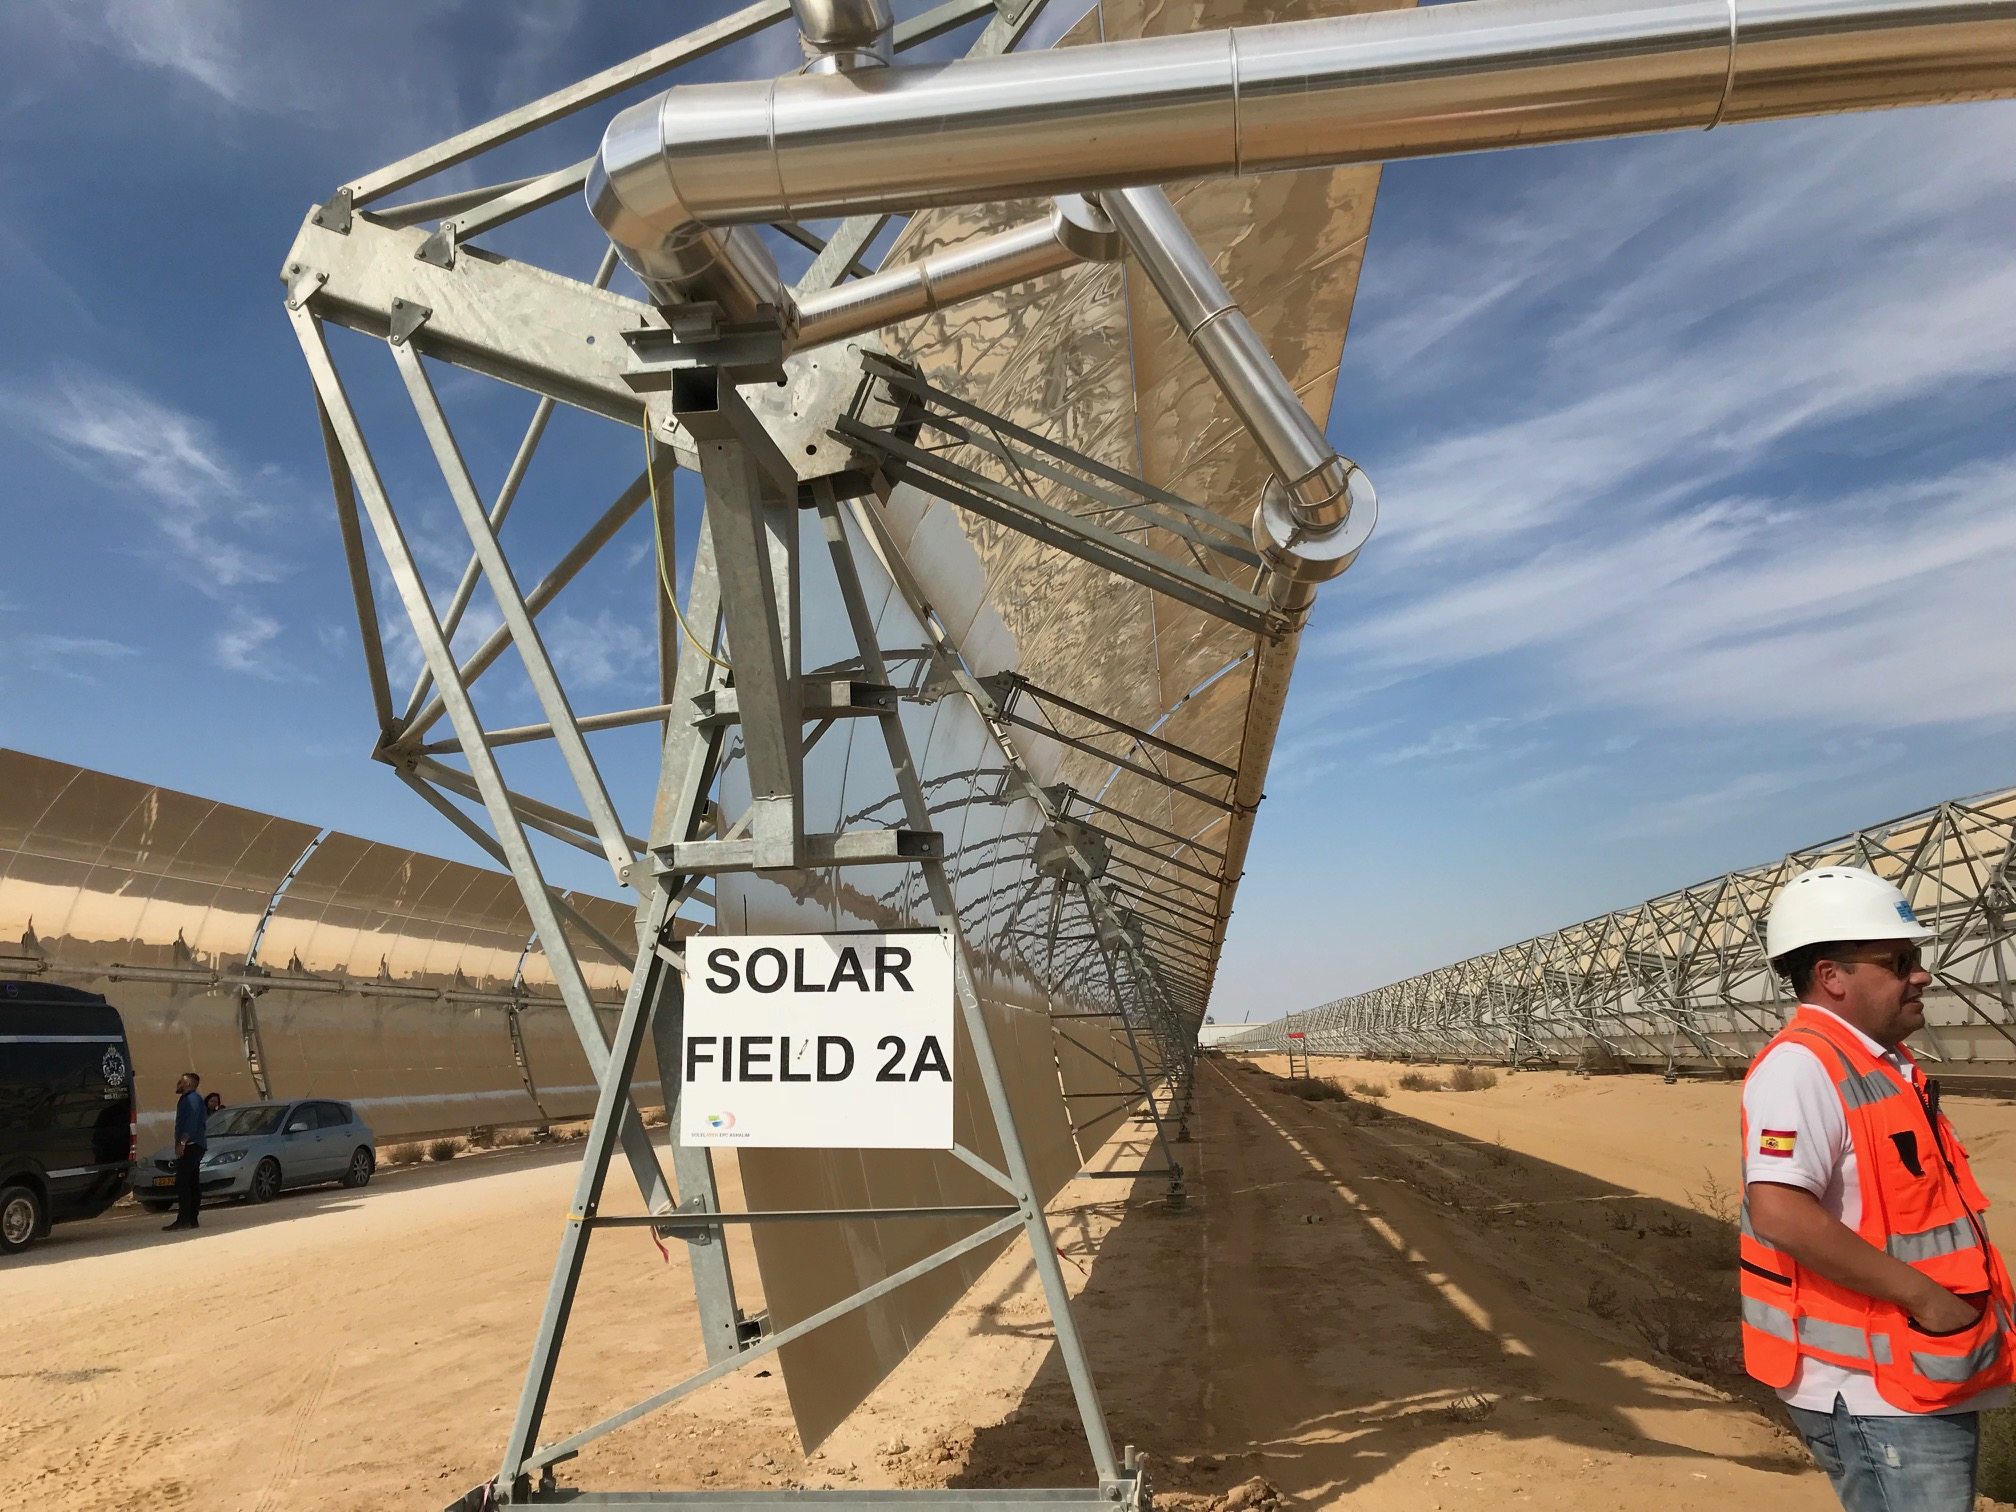 Take a tour of Israel's huge new solar-energy valley in the desert